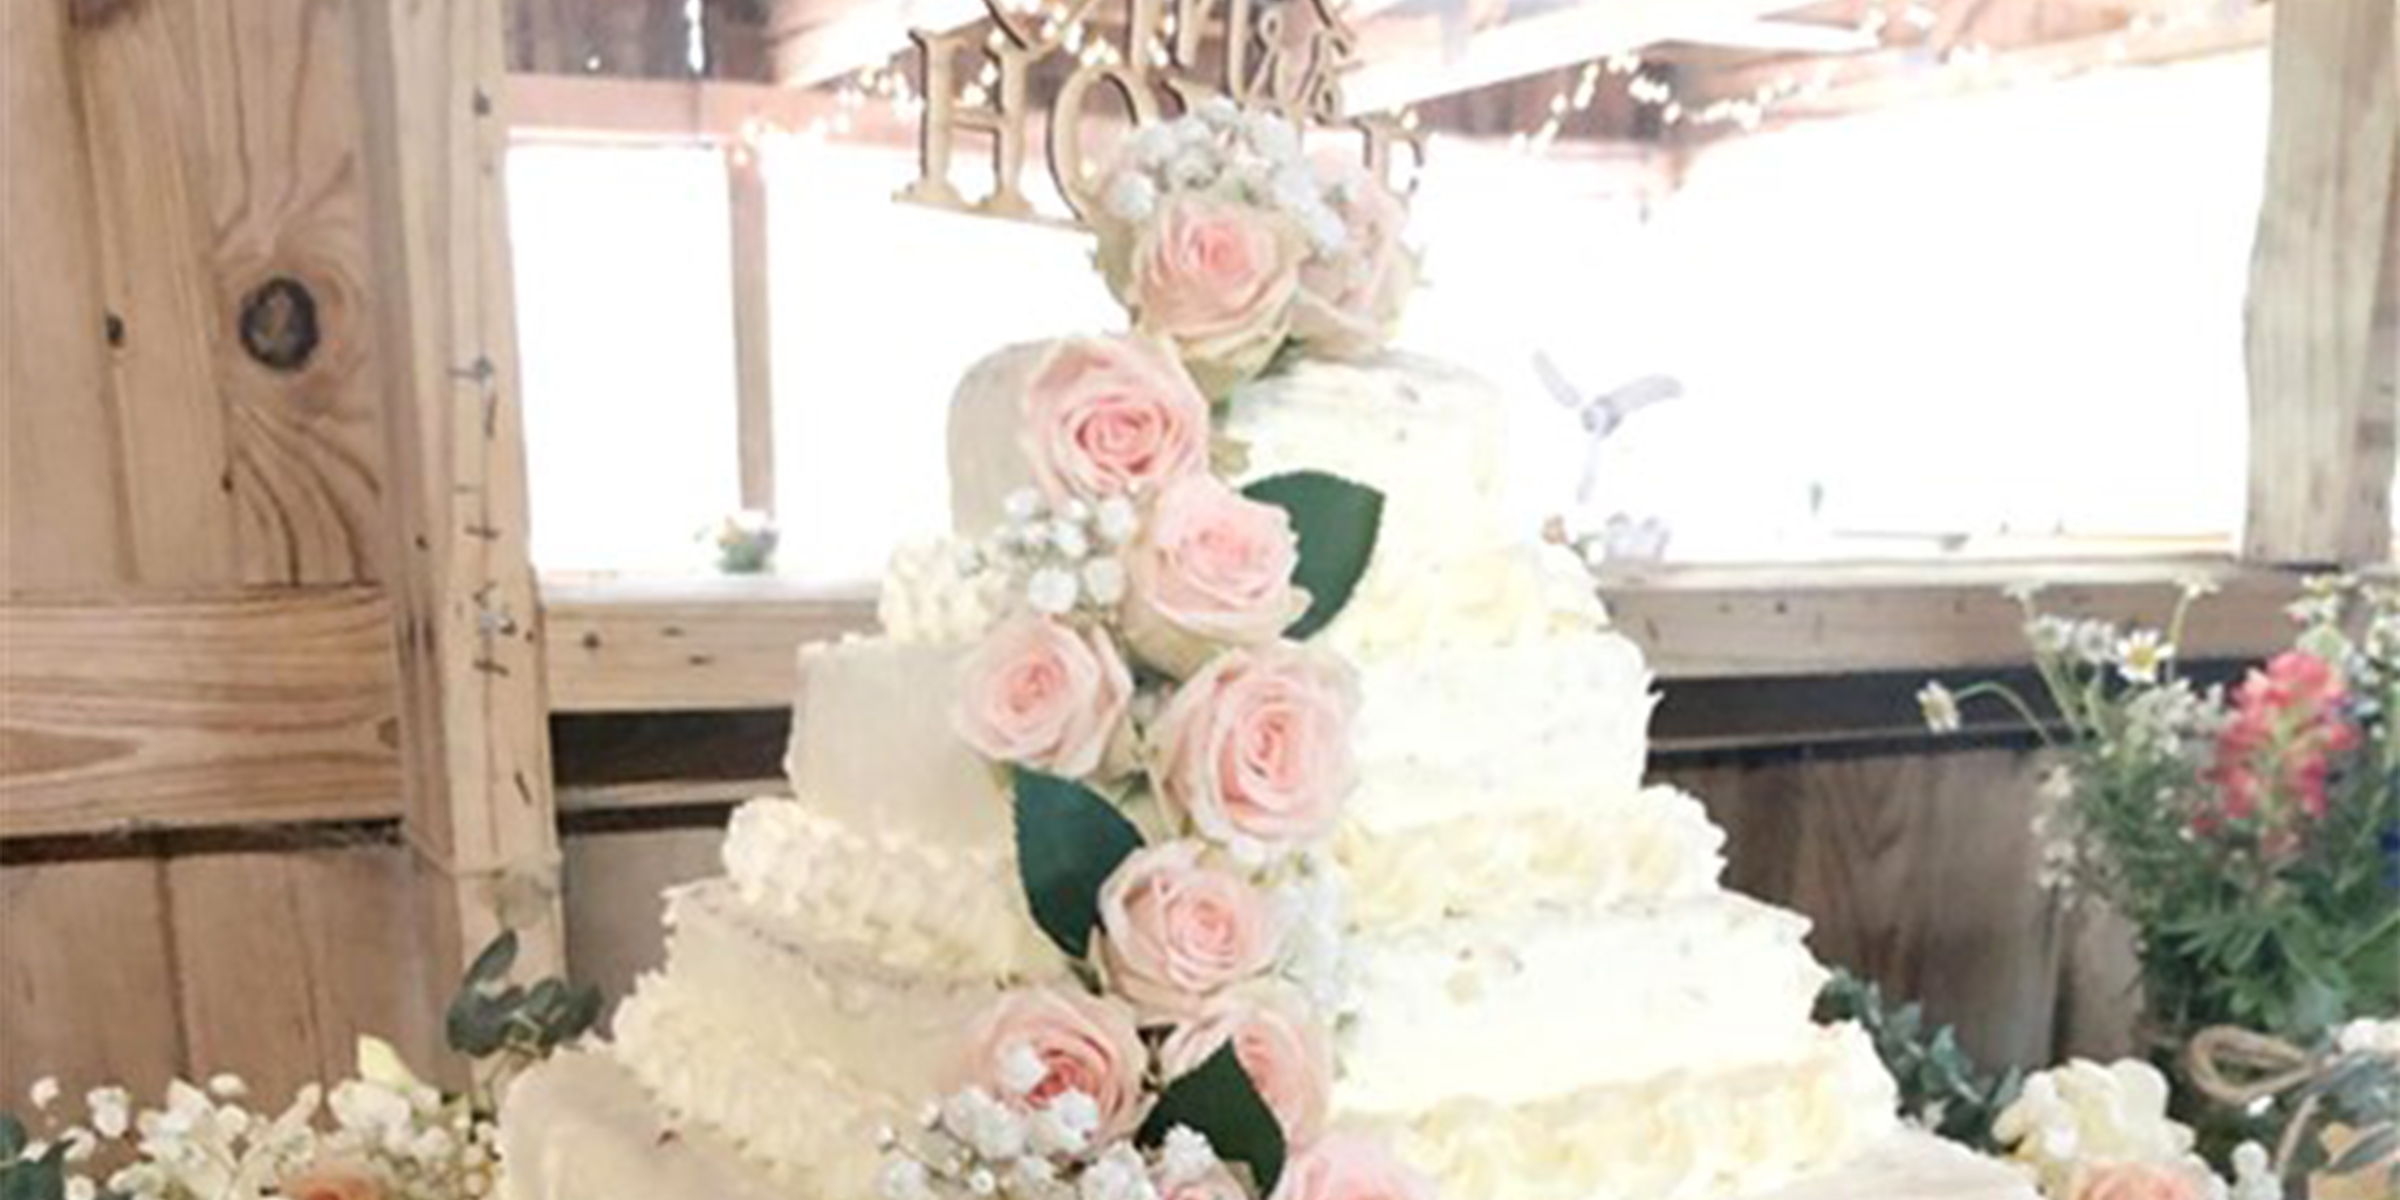 A Brides Brother Turned Costco Cakes Into A Whimsical